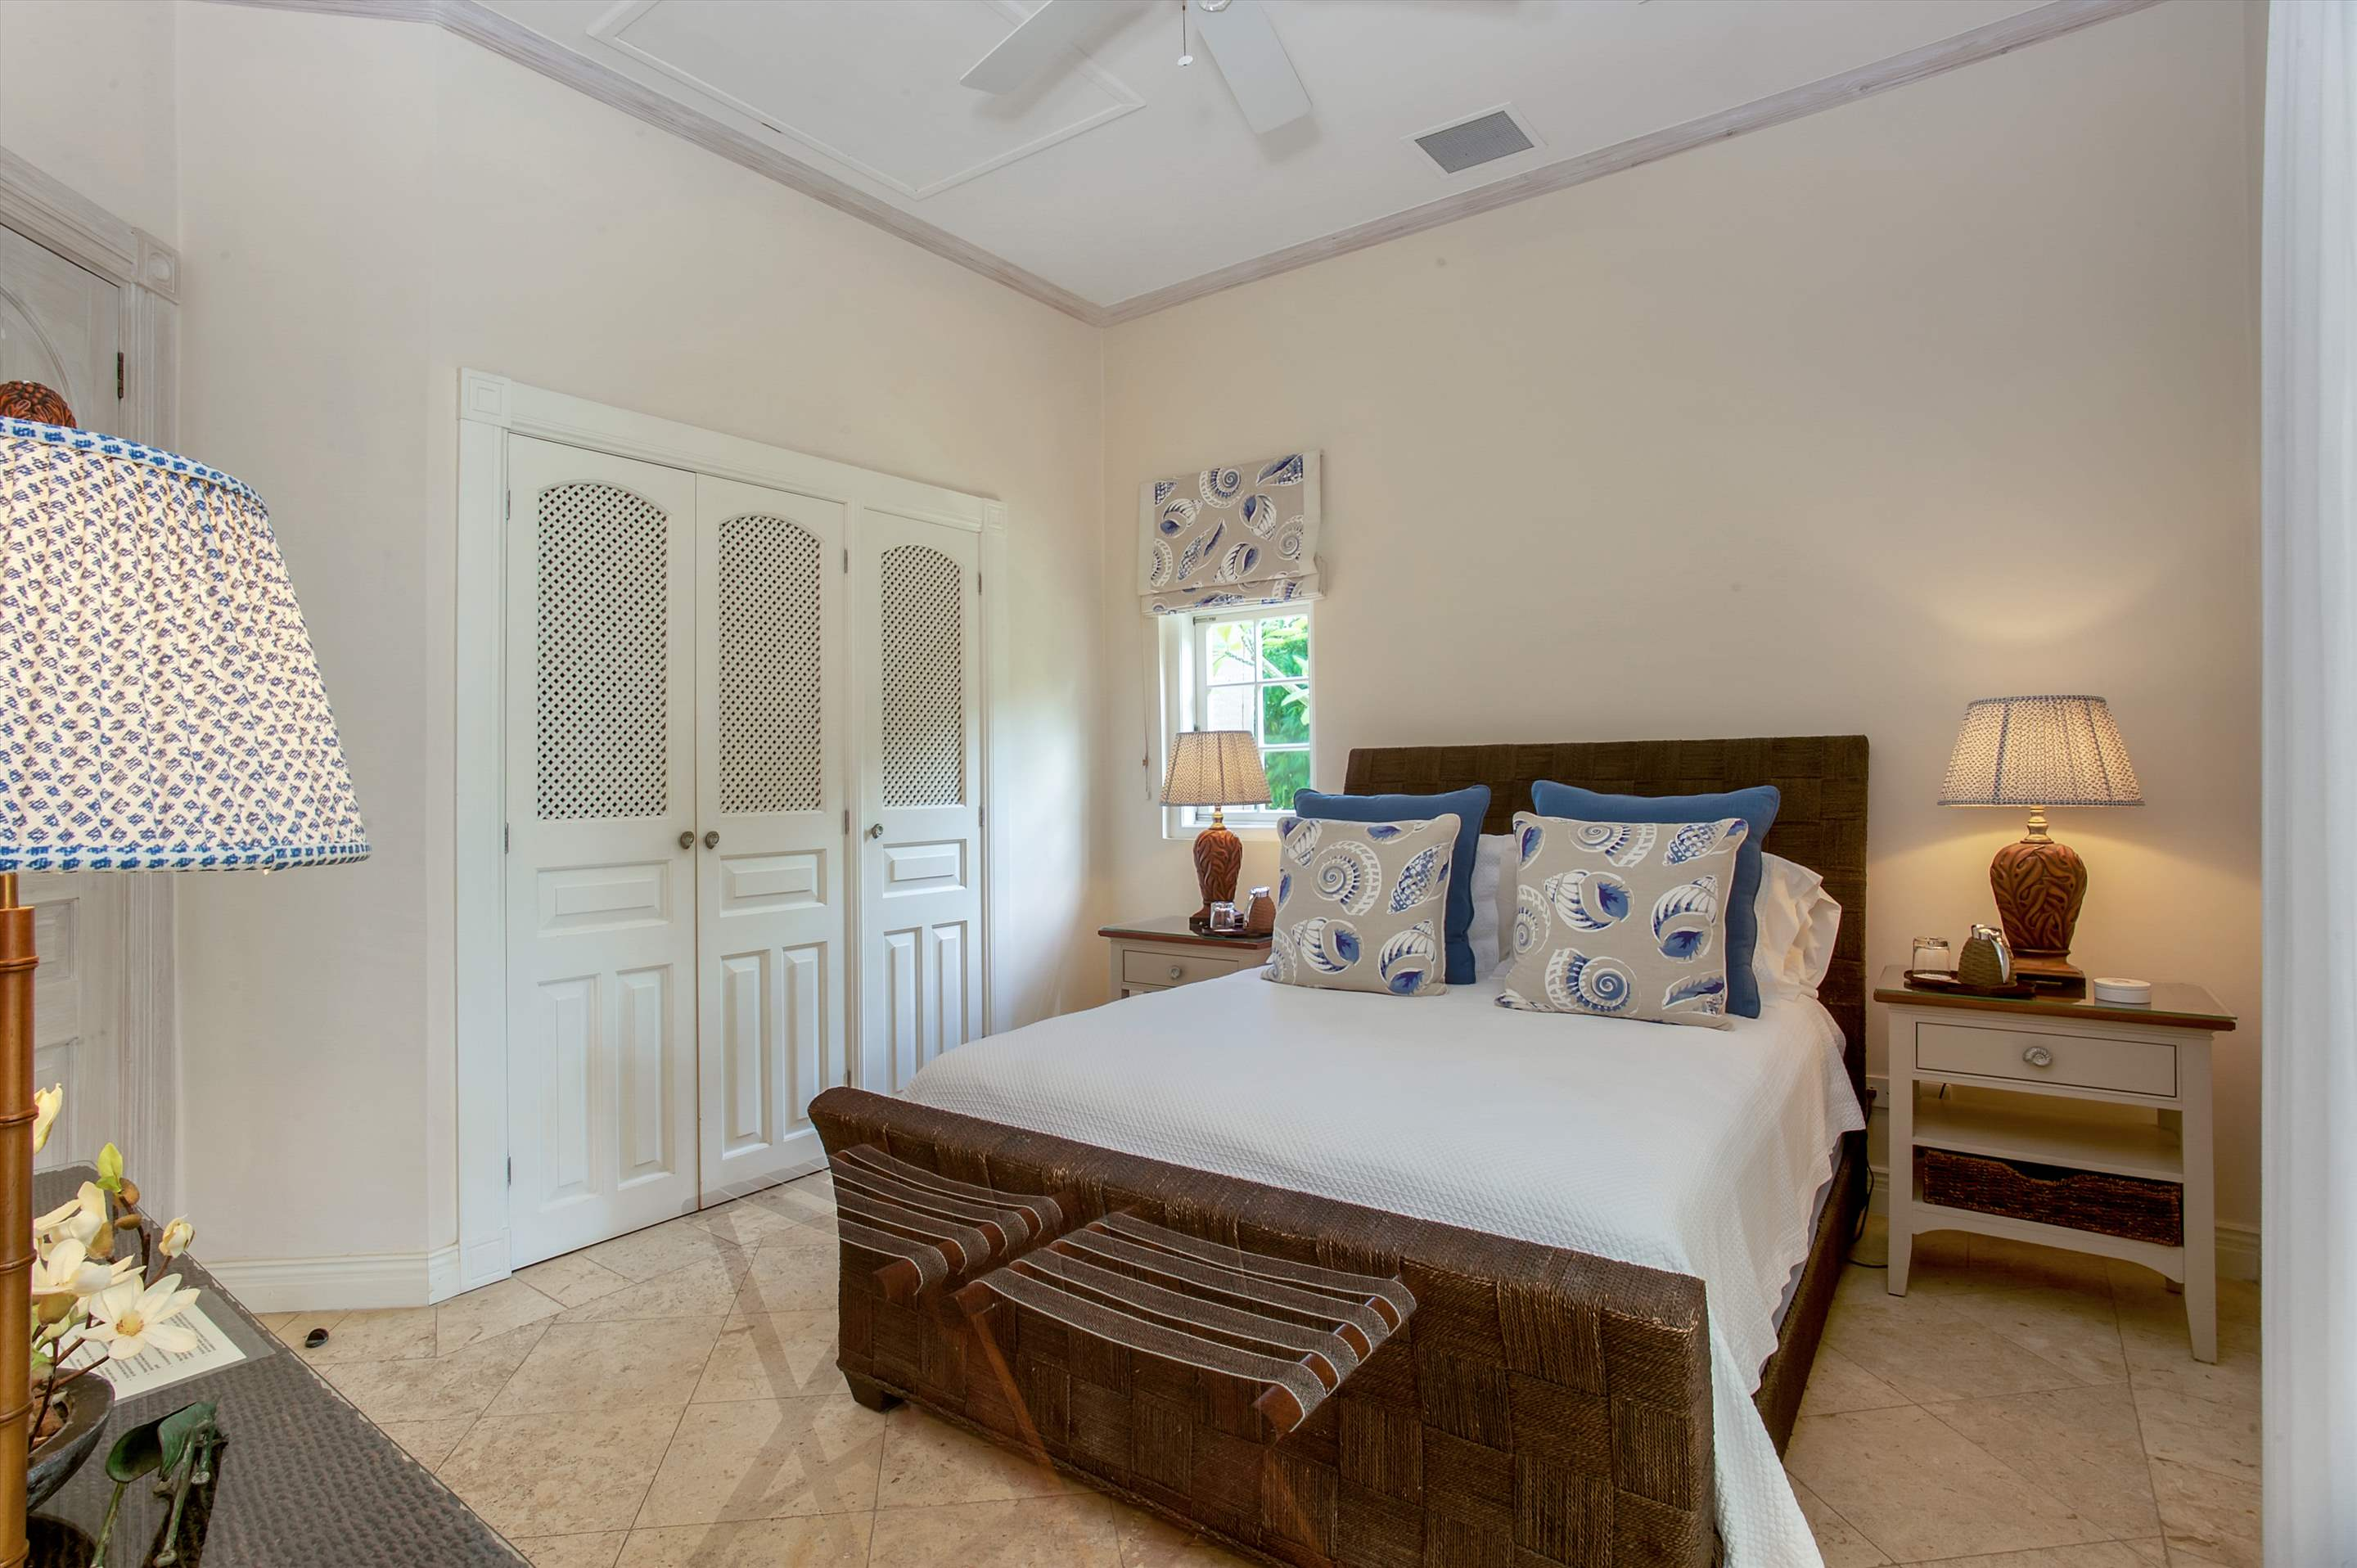 Plantation House, Royal Westmoreland, 6 bedroom, 6 bedroom villa in St. James & West Coast, Barbados Photo #12